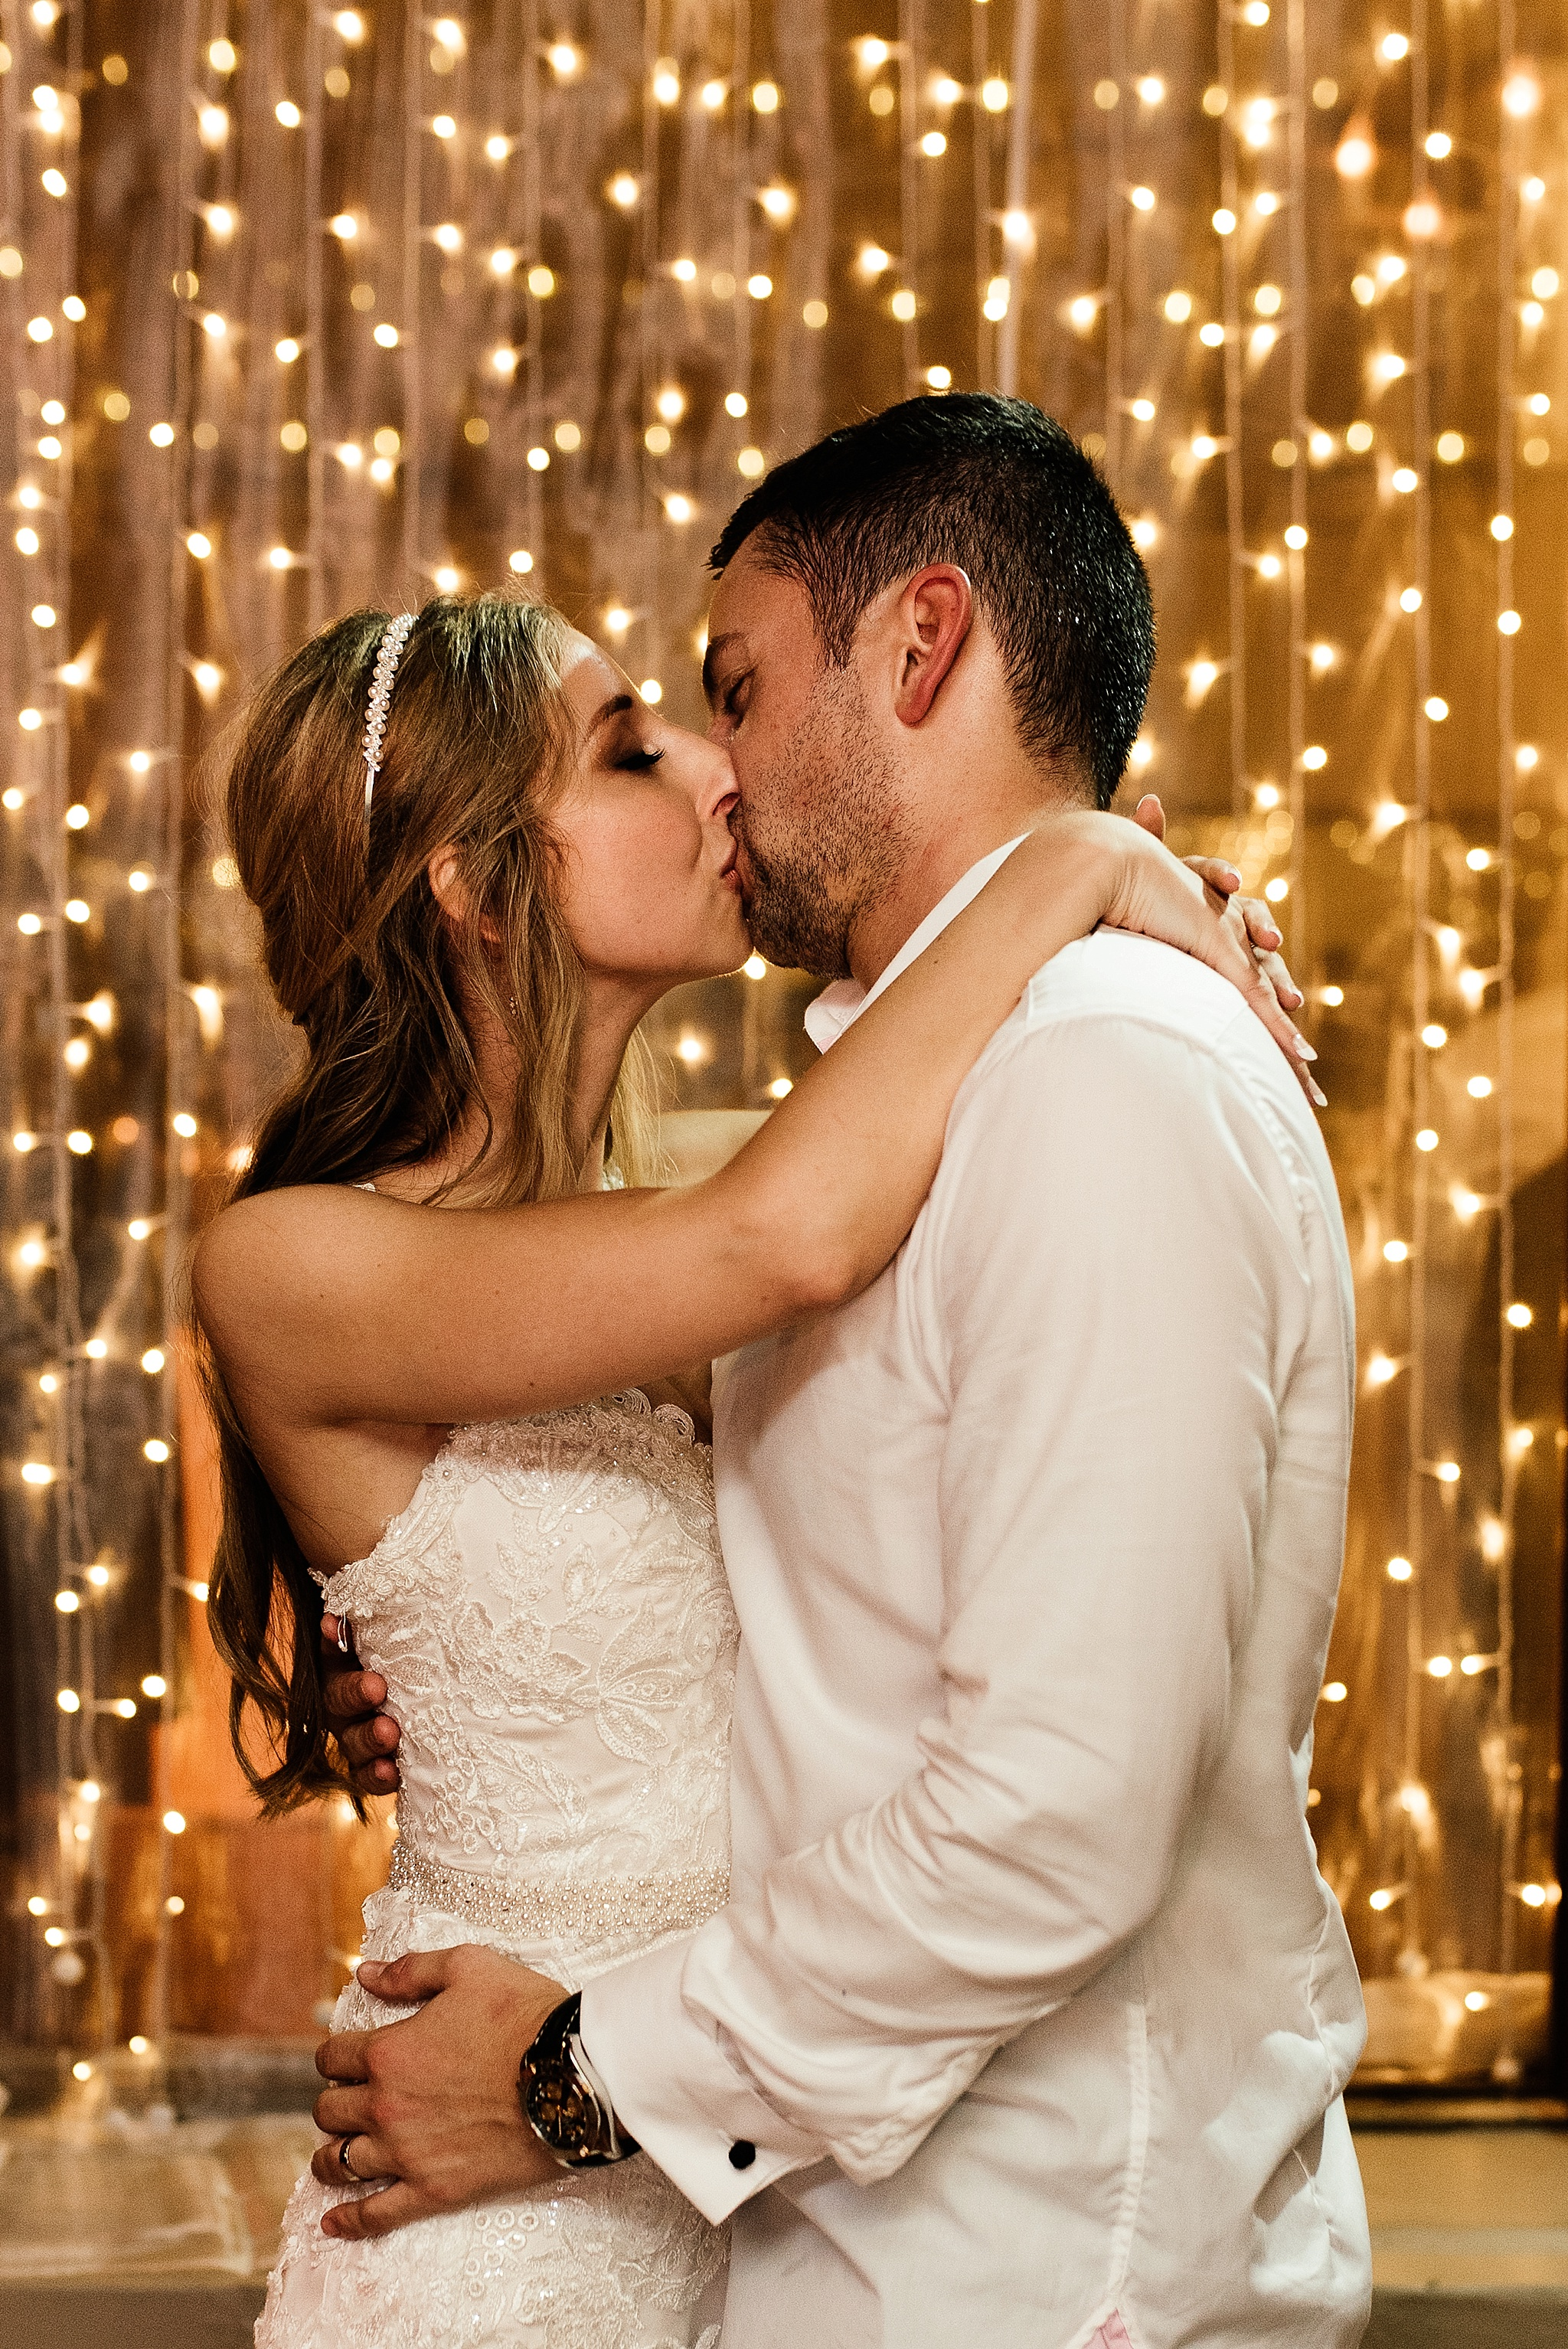 Cape Town Wedding Photographer Darren Bester - SuikerBossie - Stephen and Mikaela_0081.jpg